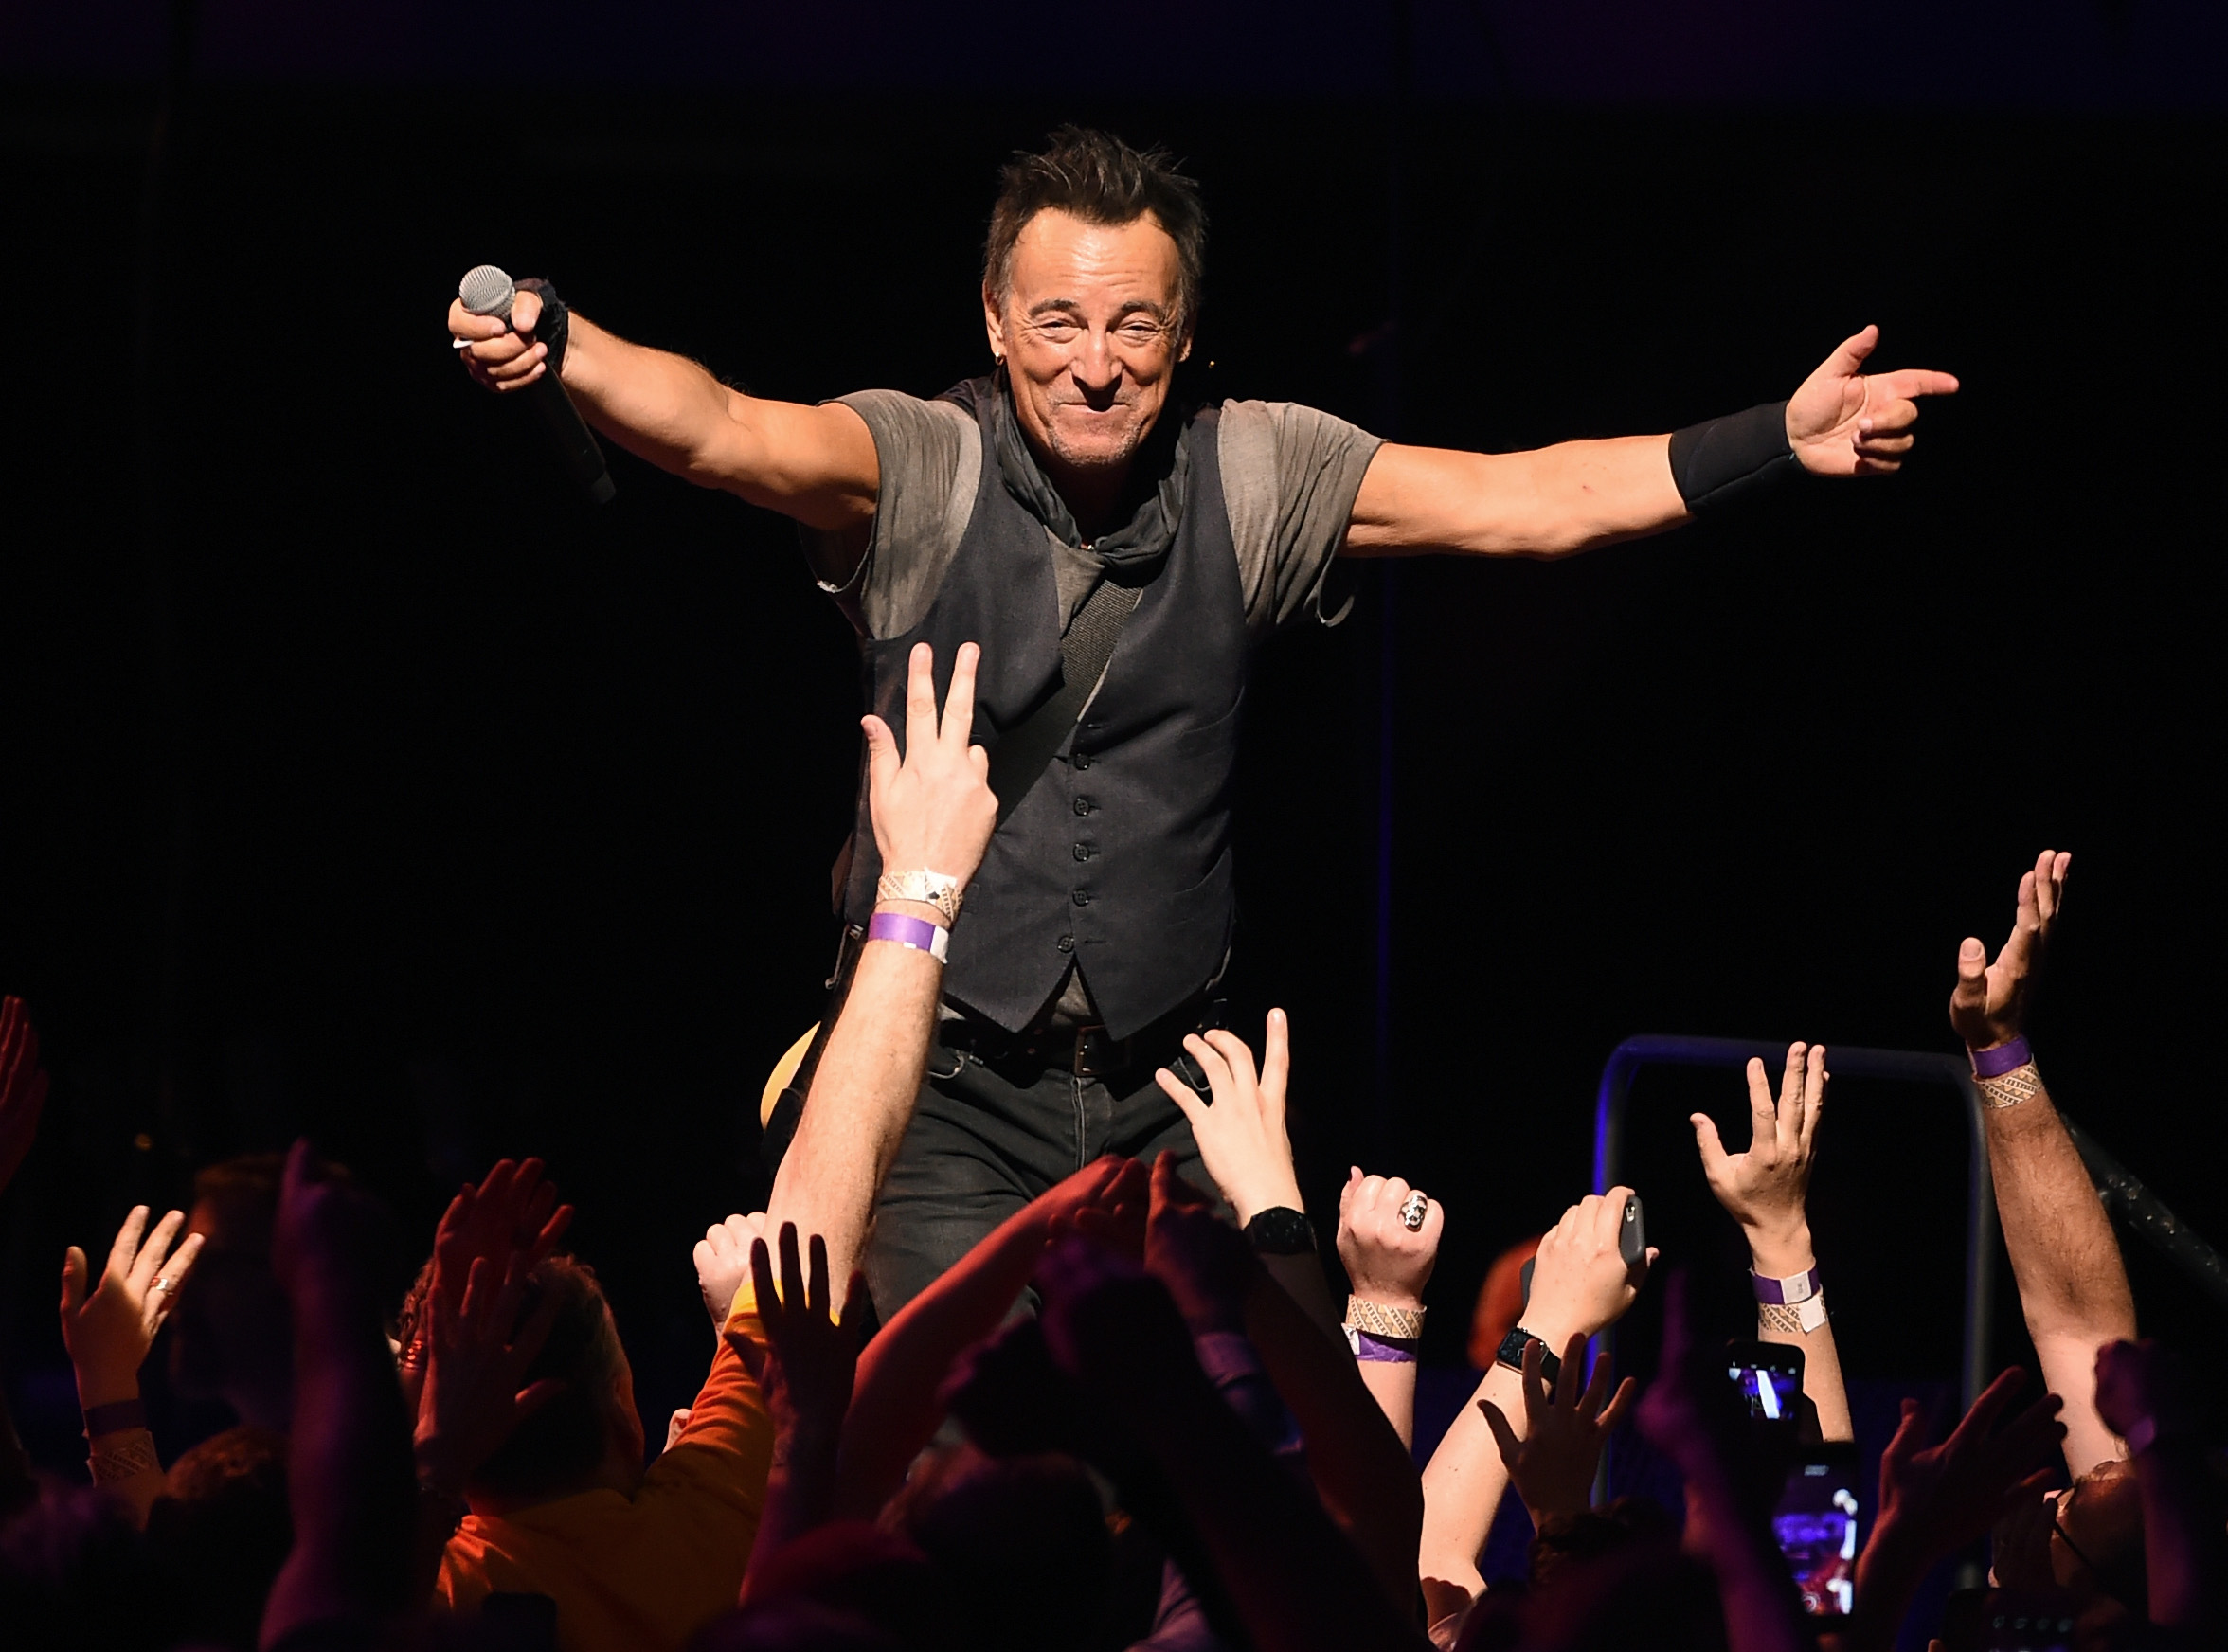 Bruce Springsteen And The E Street Band Performs At The Los Angeles Sports Arena